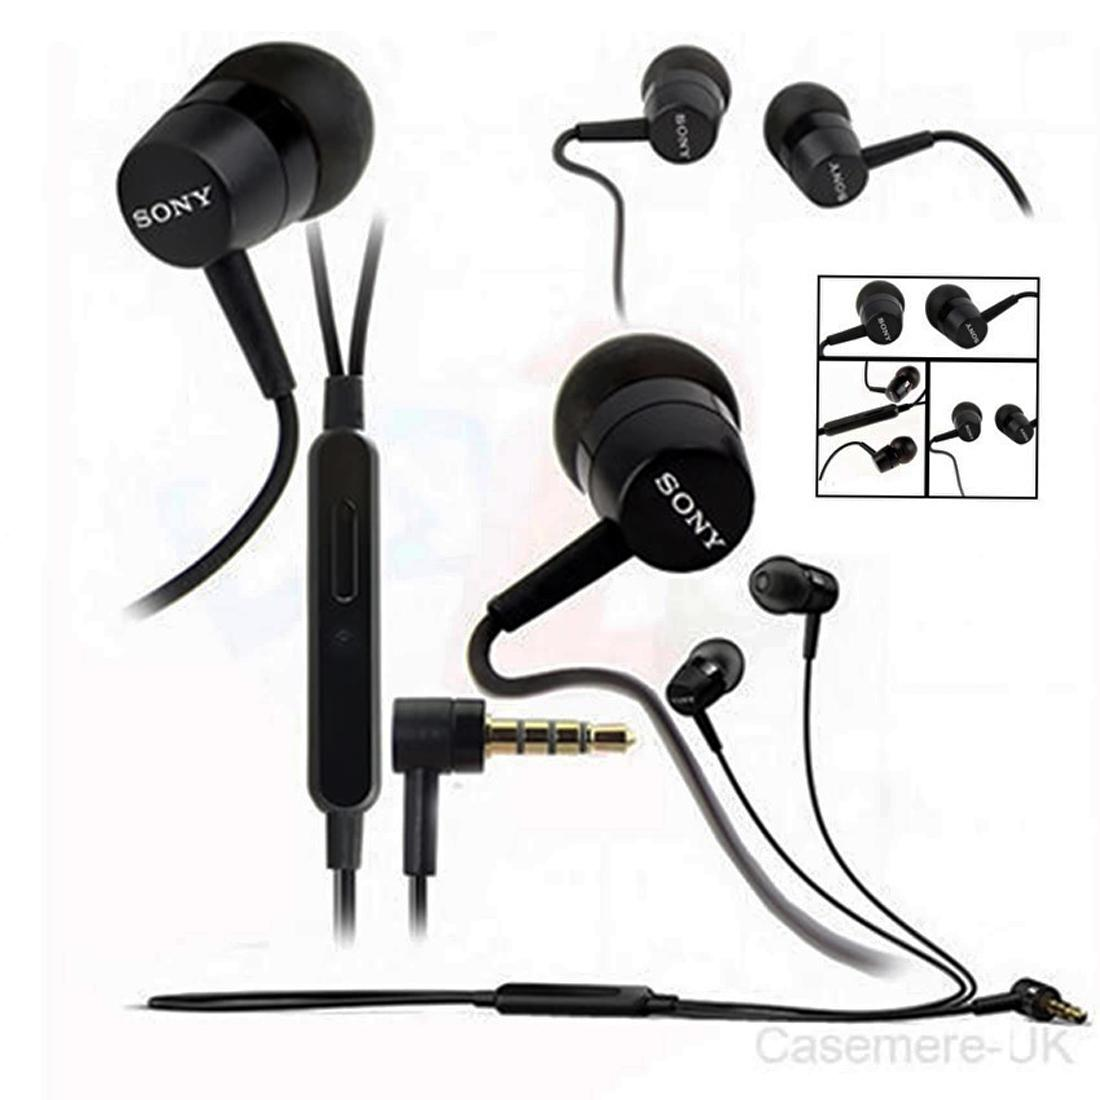 Spek Harga Motomo Metal Case For Sony Xperia Z1 Mini Compact Z3 16gb Hitam Mh750 Handsfree Z2 Headset Earphone